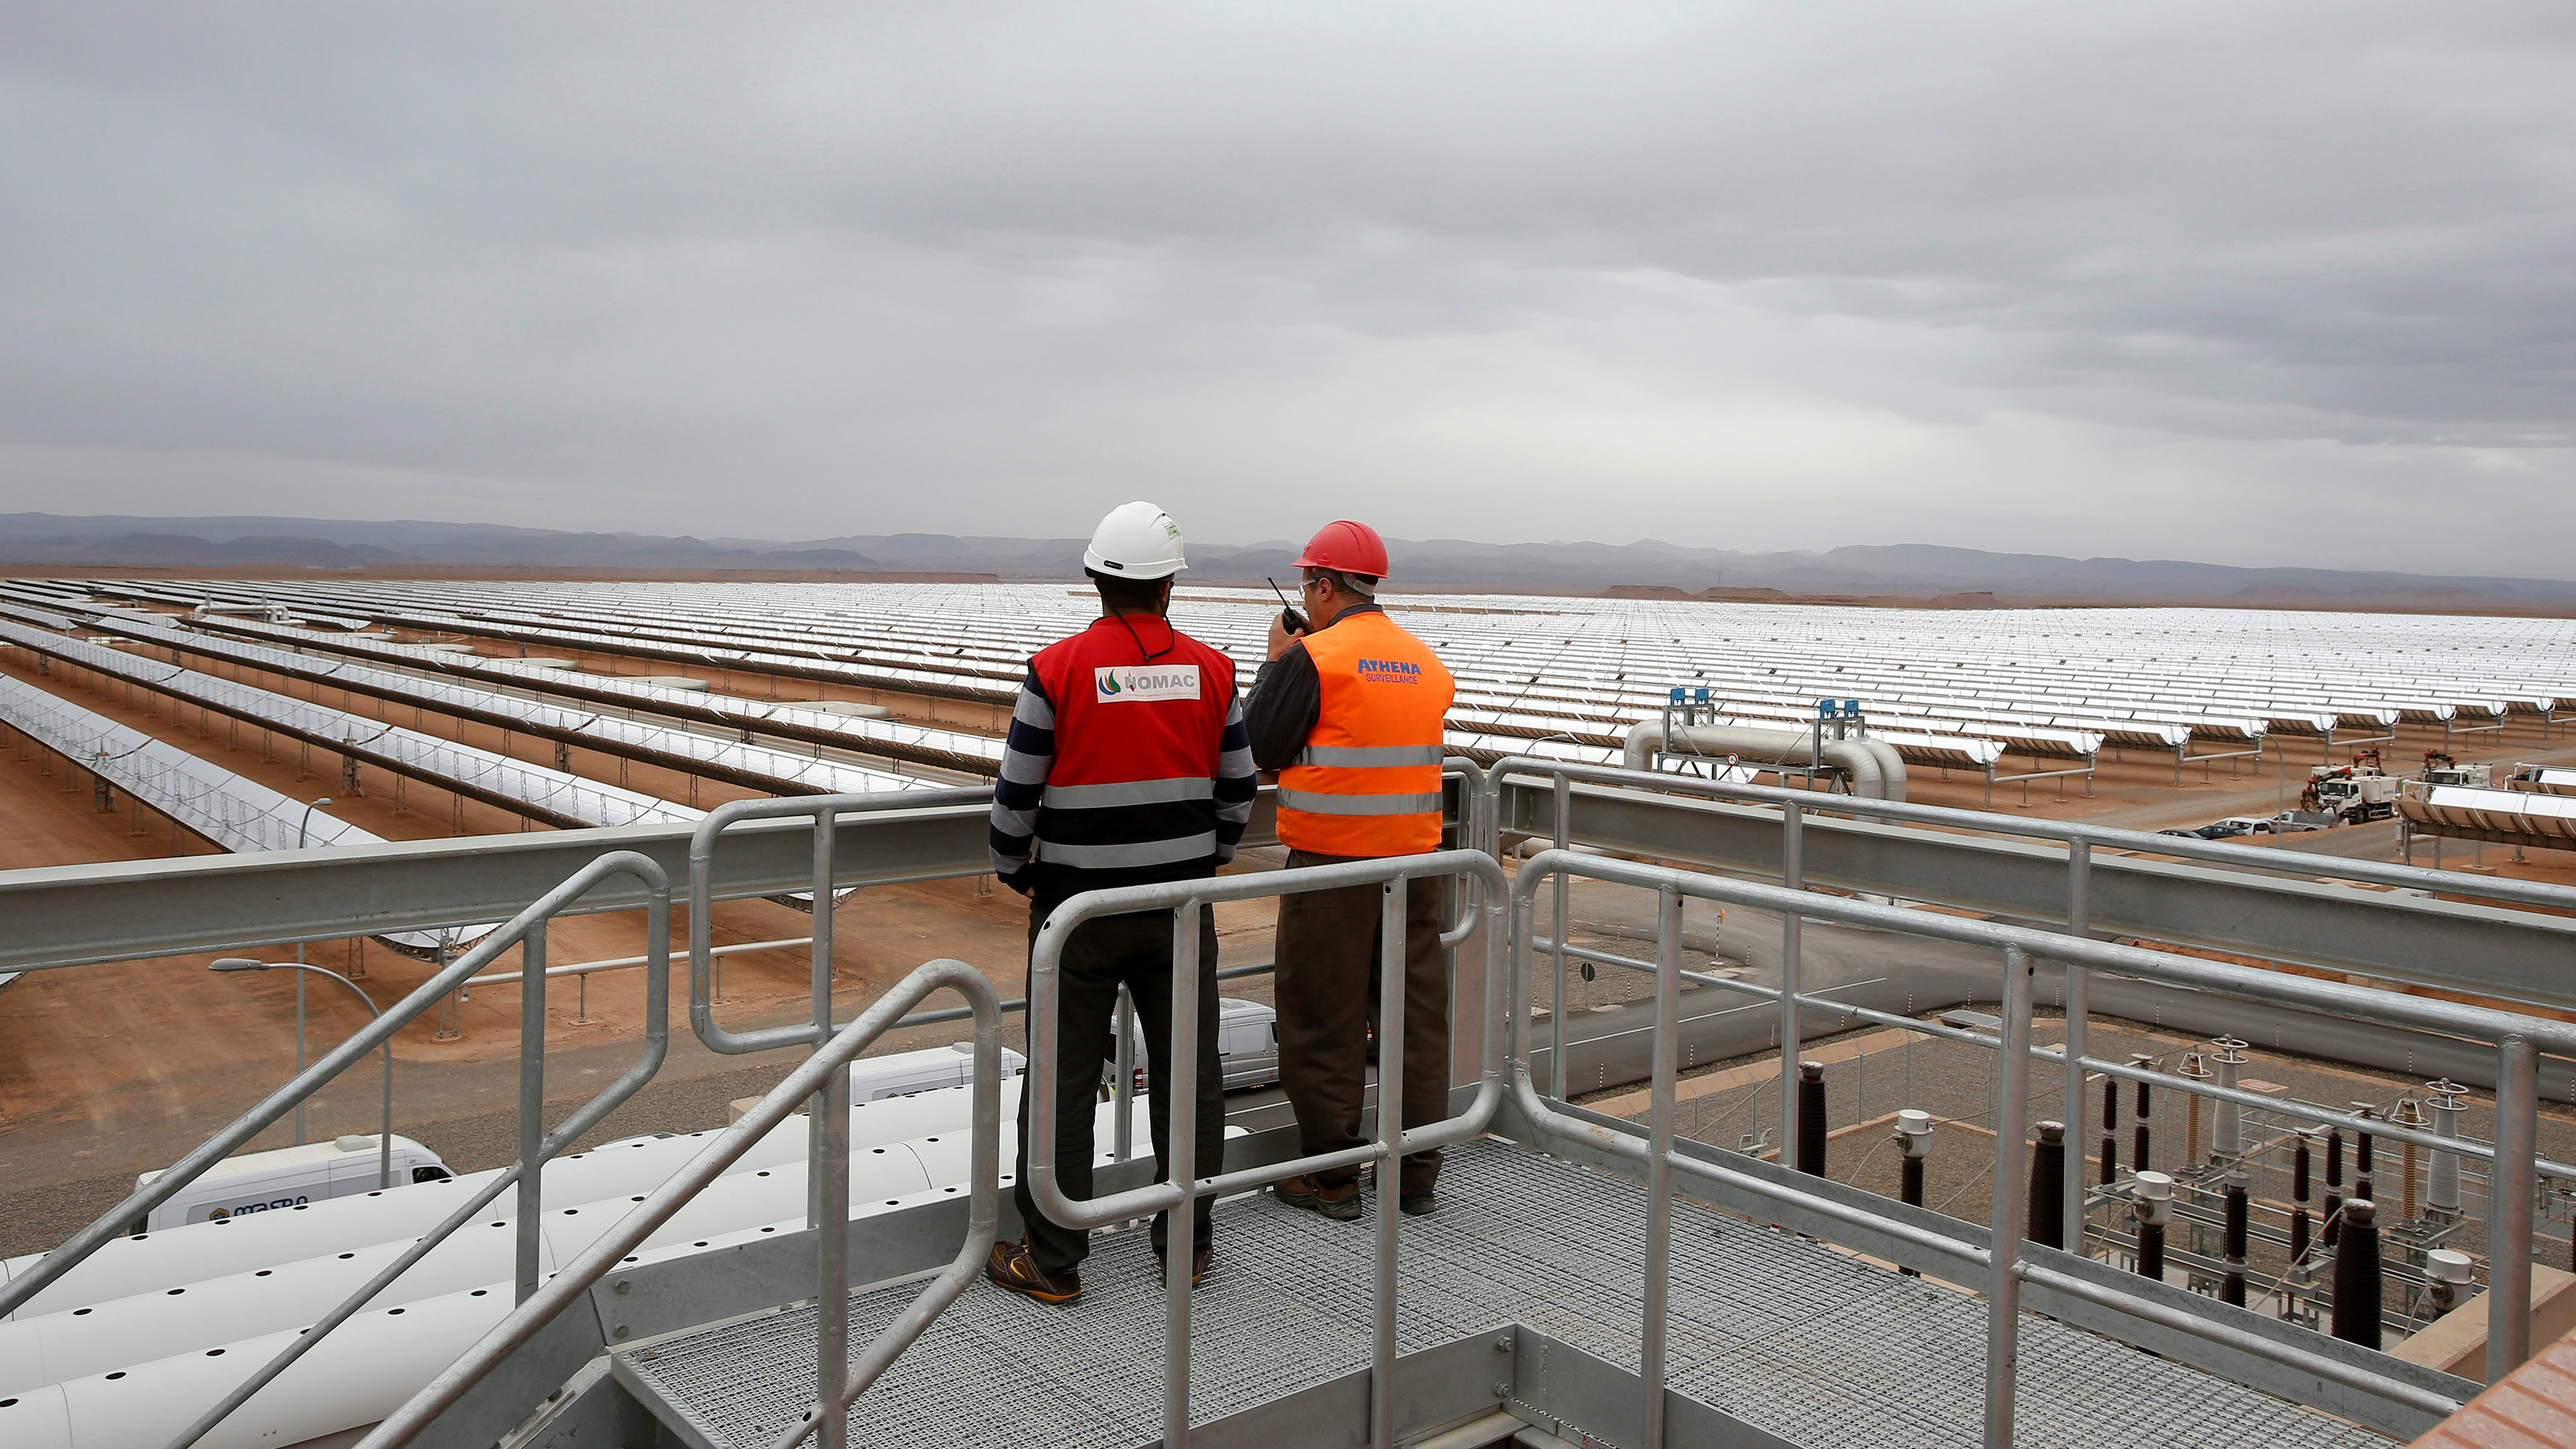 A thermosolar power plant is pictured at Noor II Ouarzazate, Morocco, November 4, 2016. Picture taken November 4, 2016.